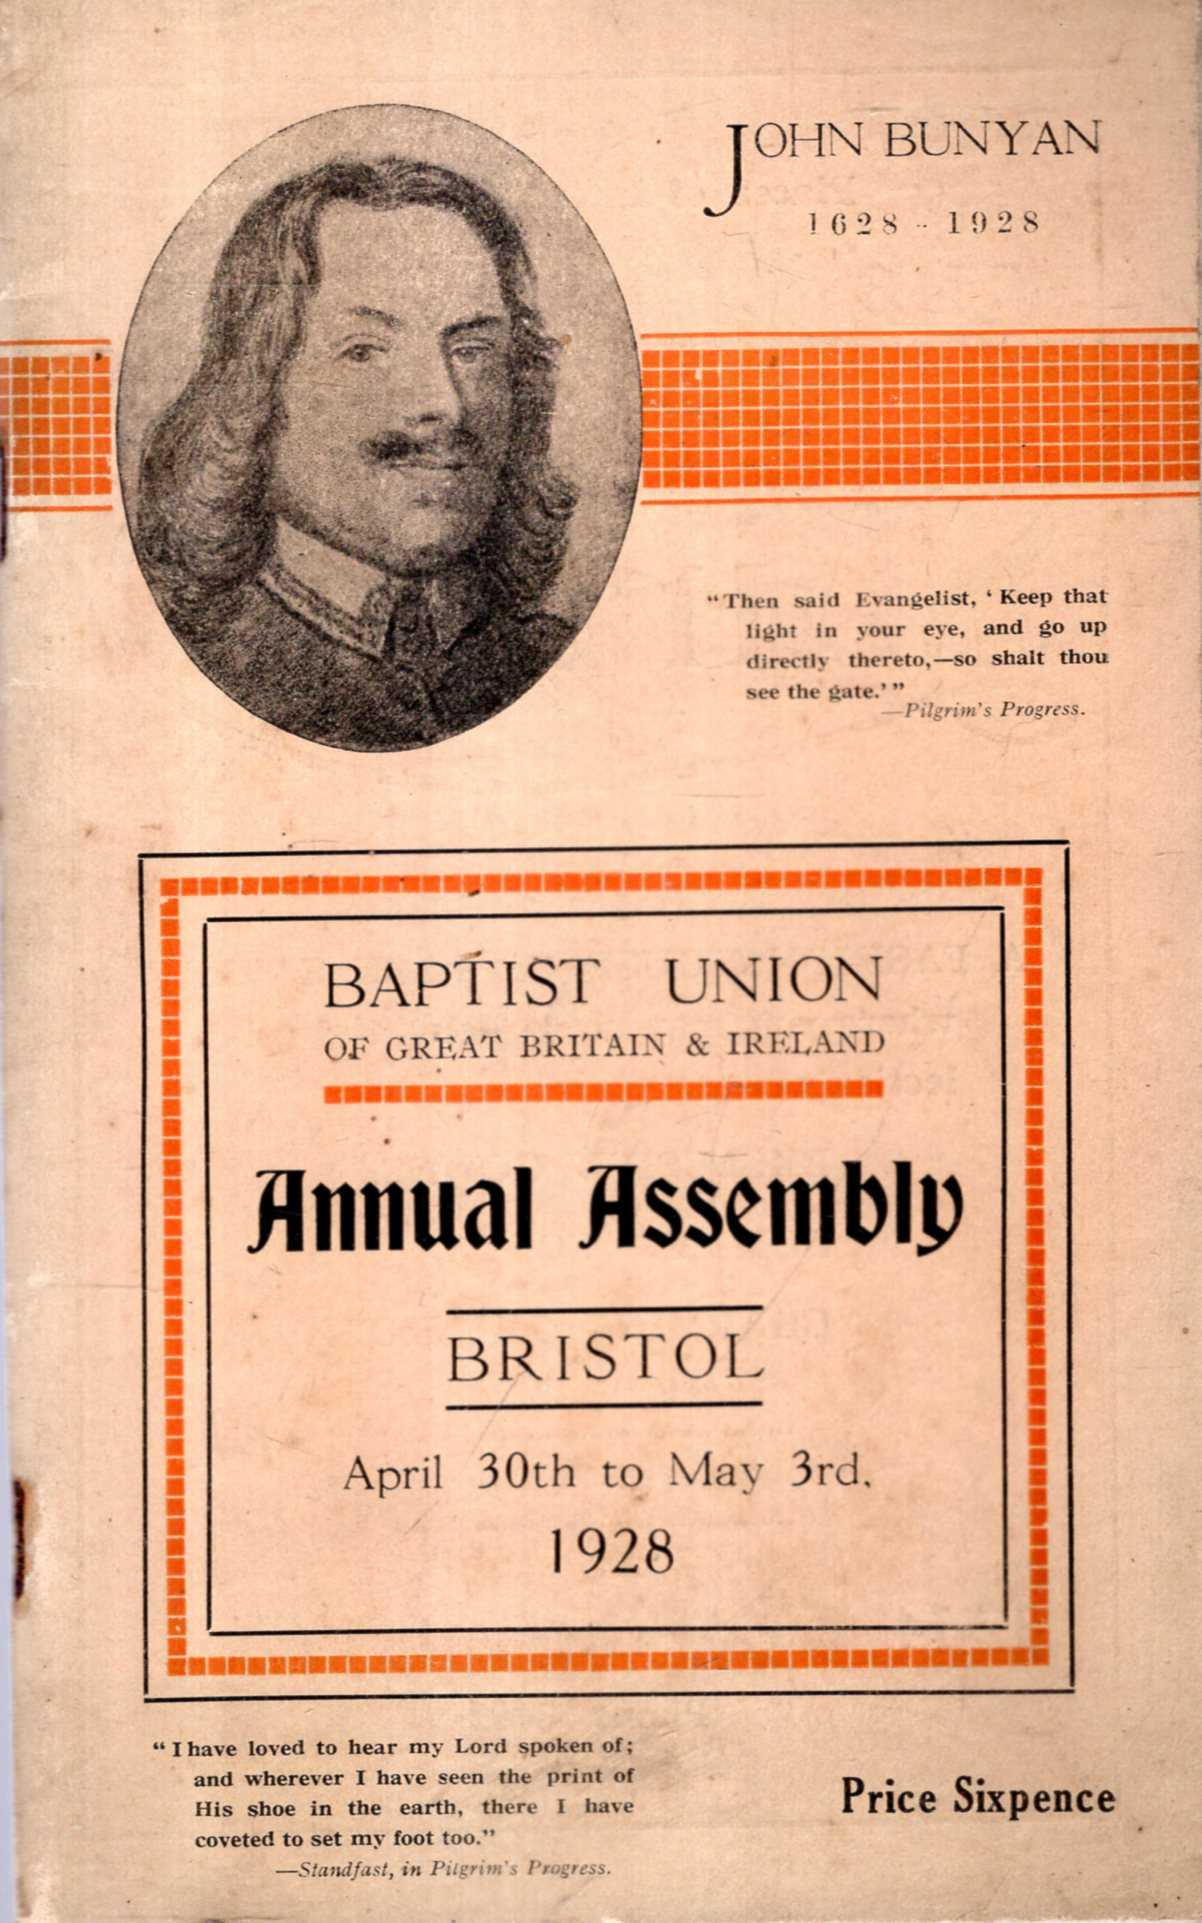 Image for The Baptist Union of Great Britain & Ireland : Handbook of the Annual Assembly, Bristol, April 30th to May 3rd, 1928